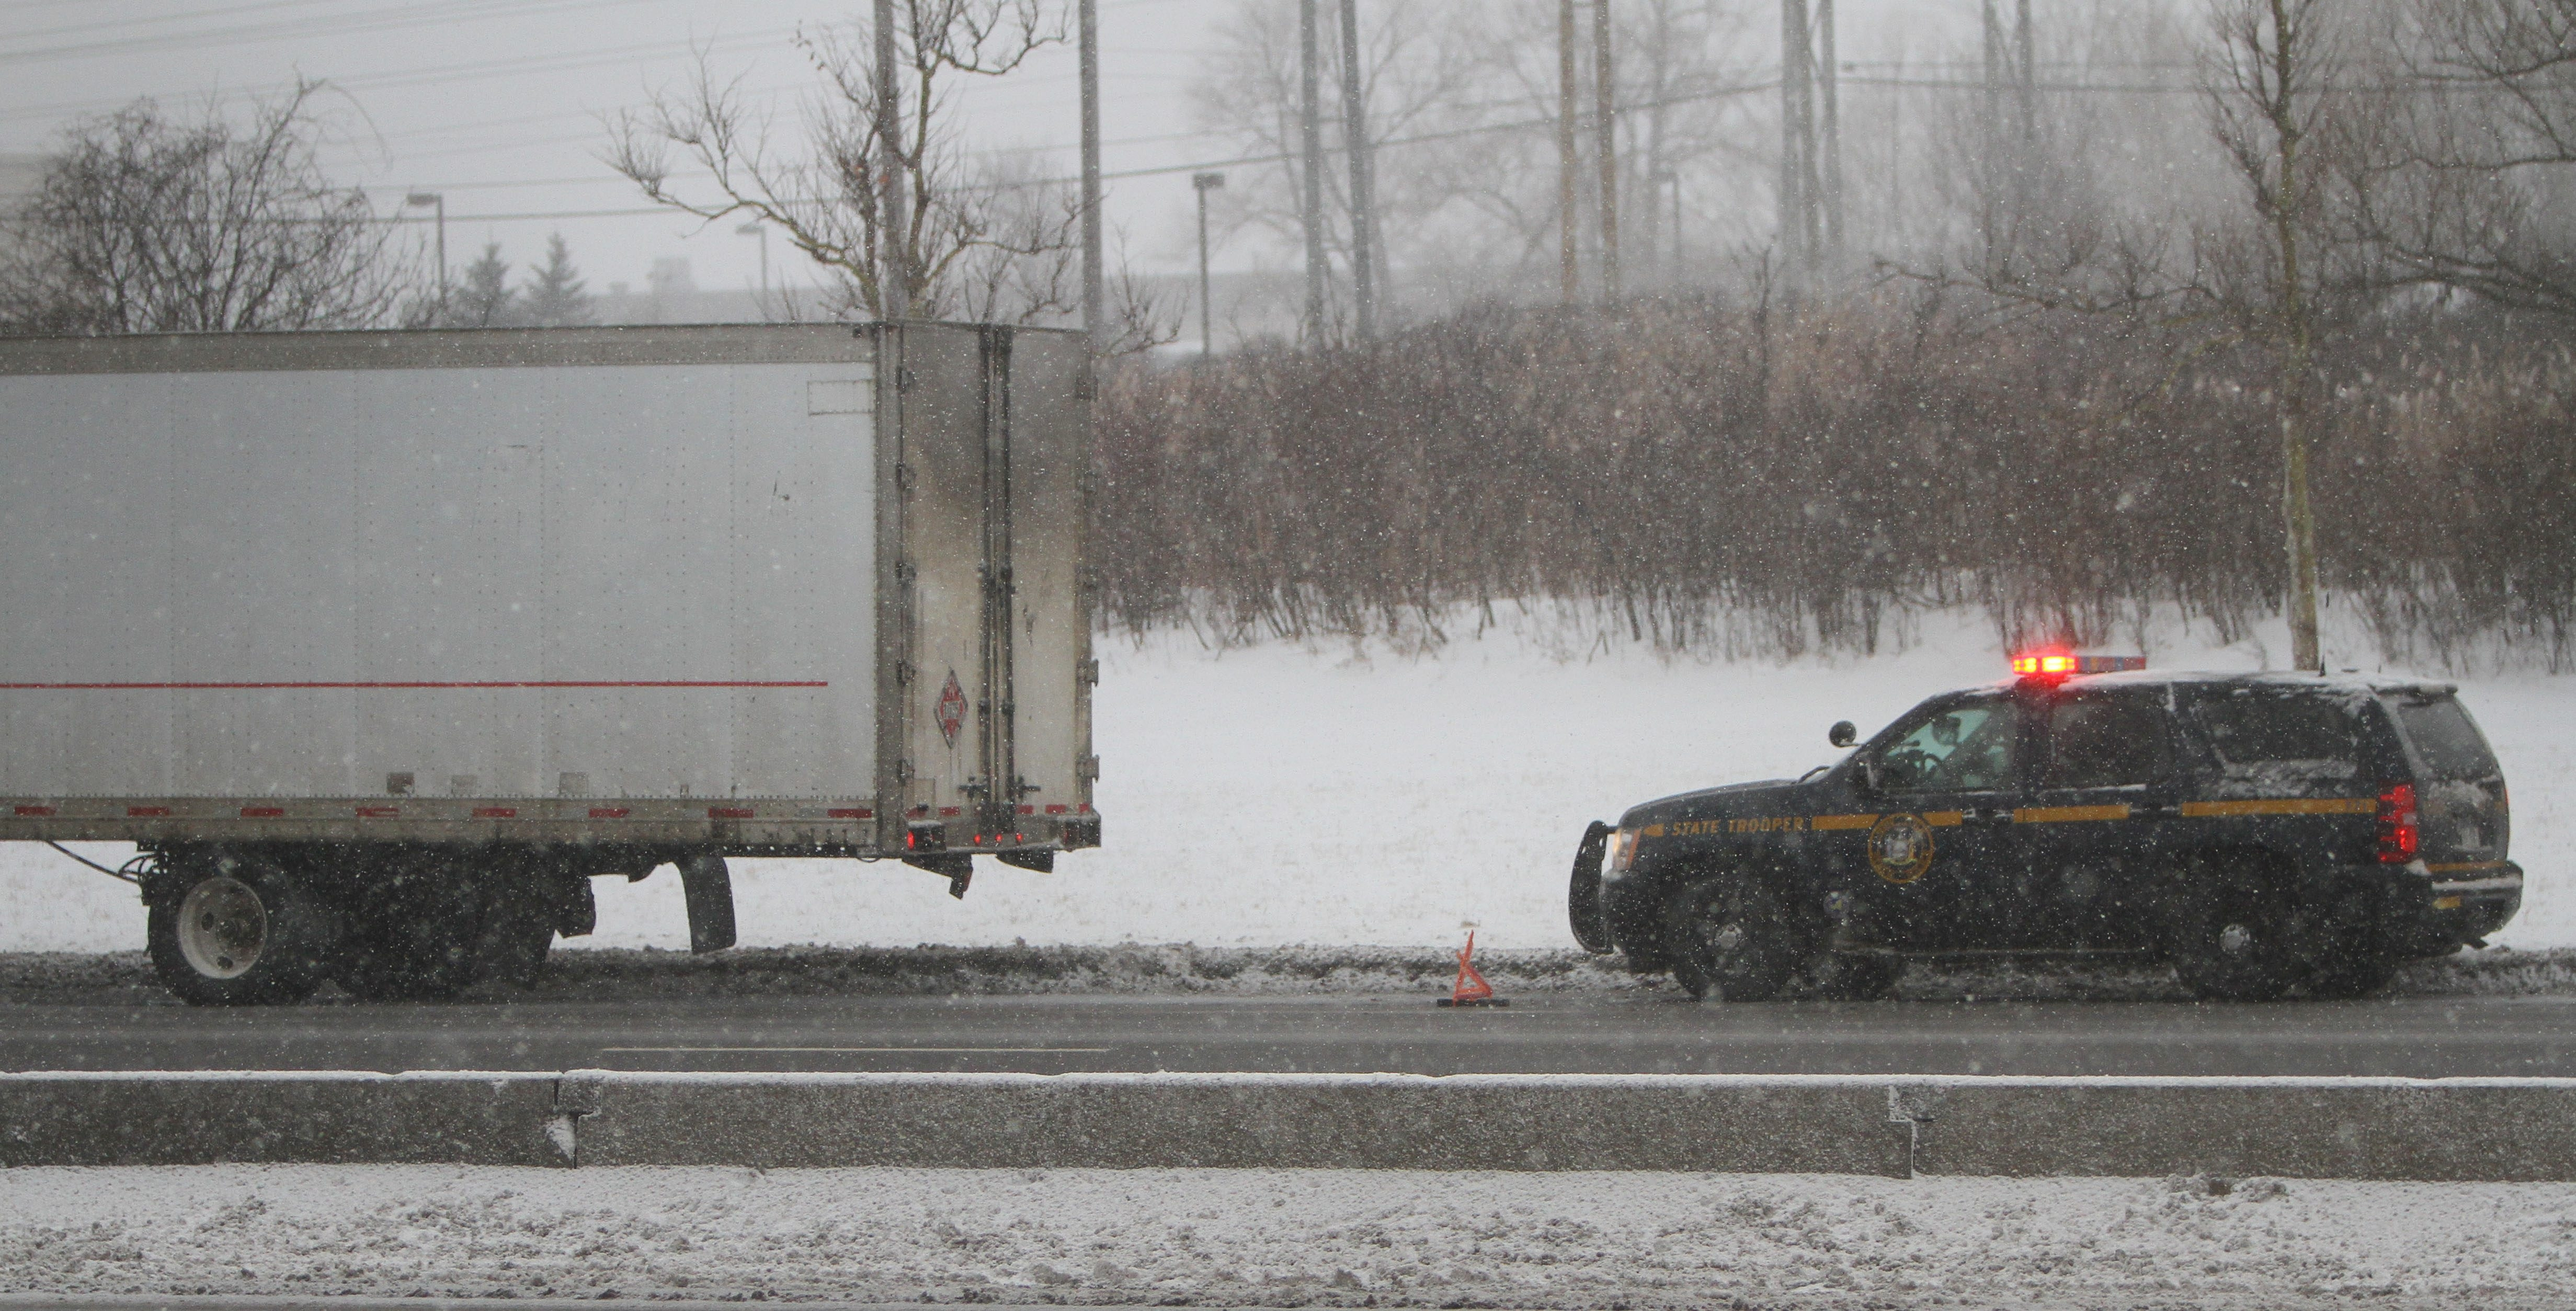 State Troopers investigate the accident on the Thruway where a truck lost an axle near Walden Avenue in Cheektowaga this morning.